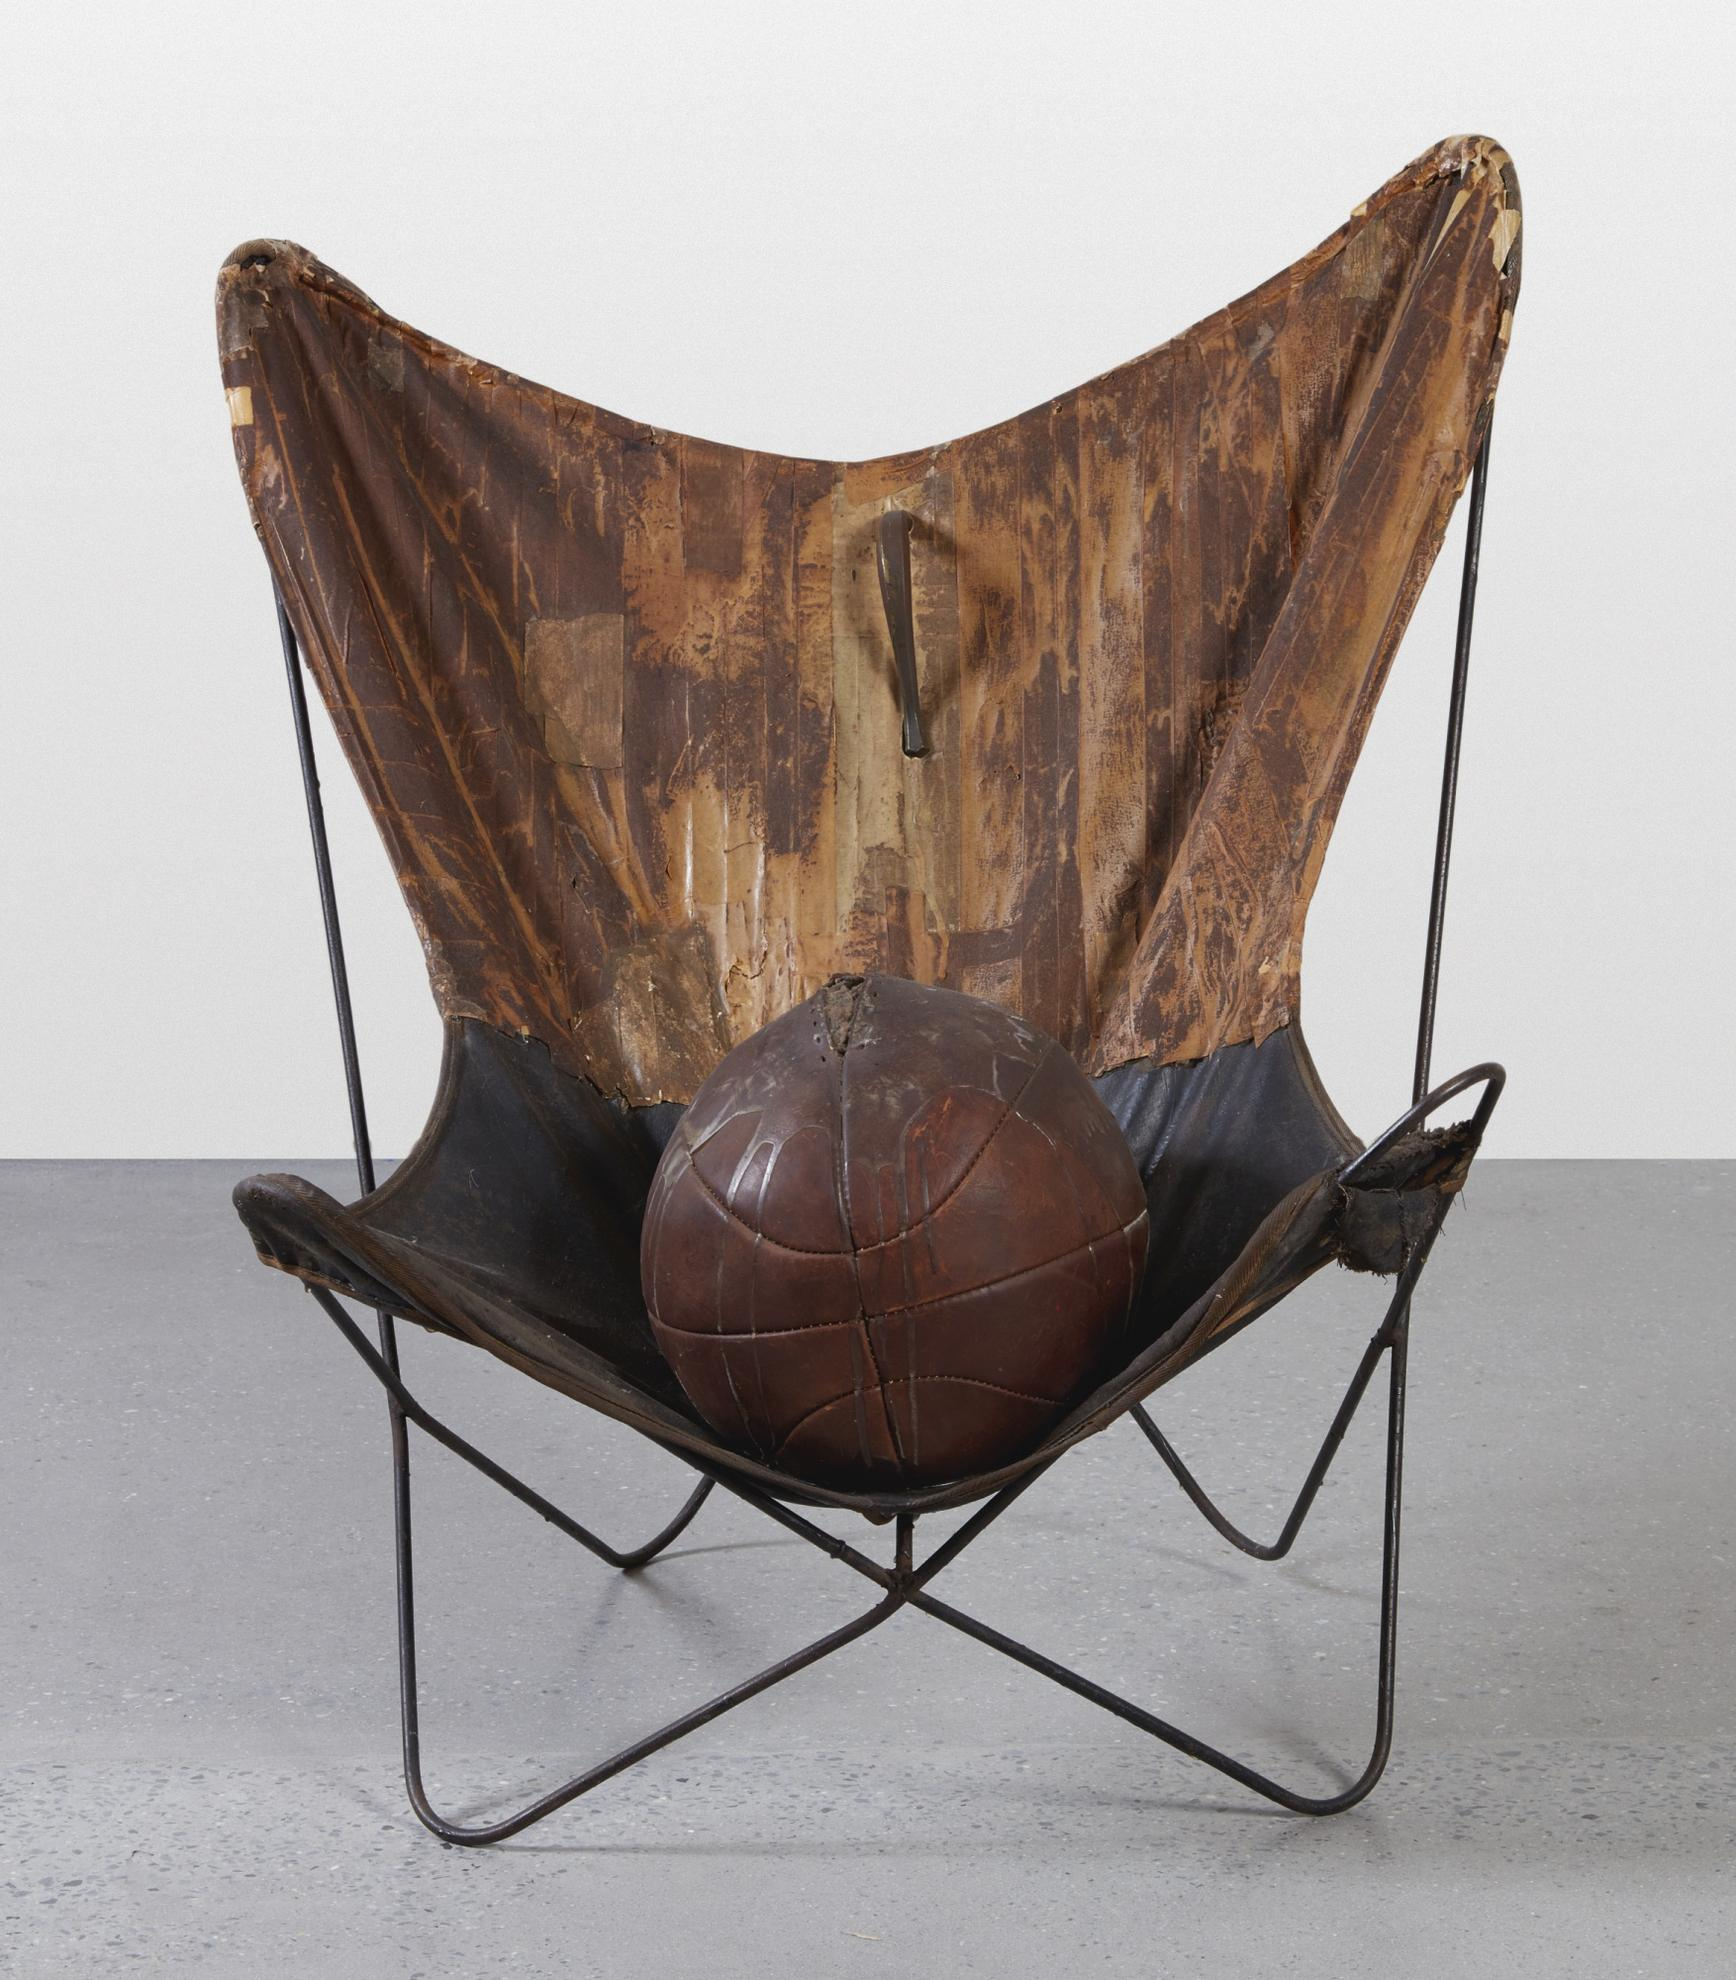 Edward Kienholz-Im Not A Fig-Plucker, Nor A Fig Pluckers Son, But Ill Pluck Your Figs Til A Fig Plucker Comes-1963